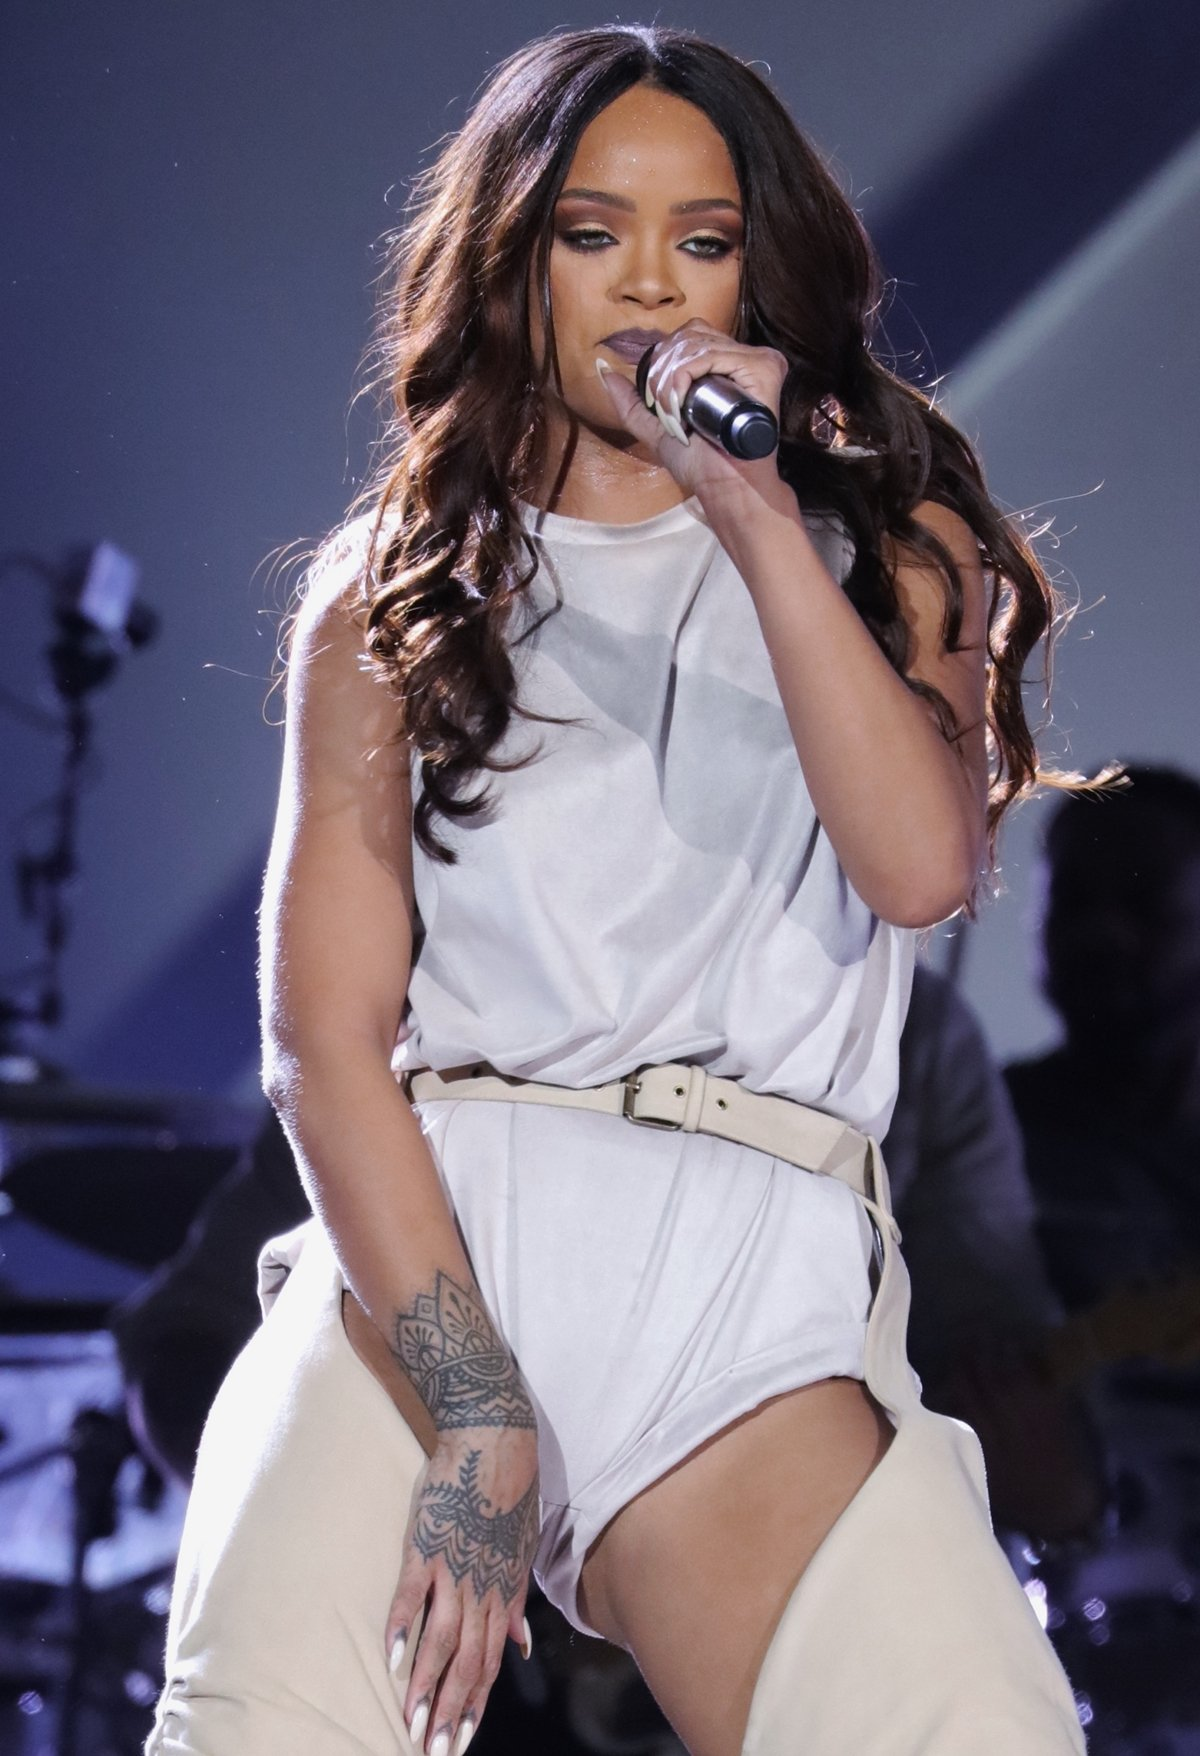 Barbadian singer Robyn Rihanna Fenty is a singer, actress, fashion designer, and businesswoman